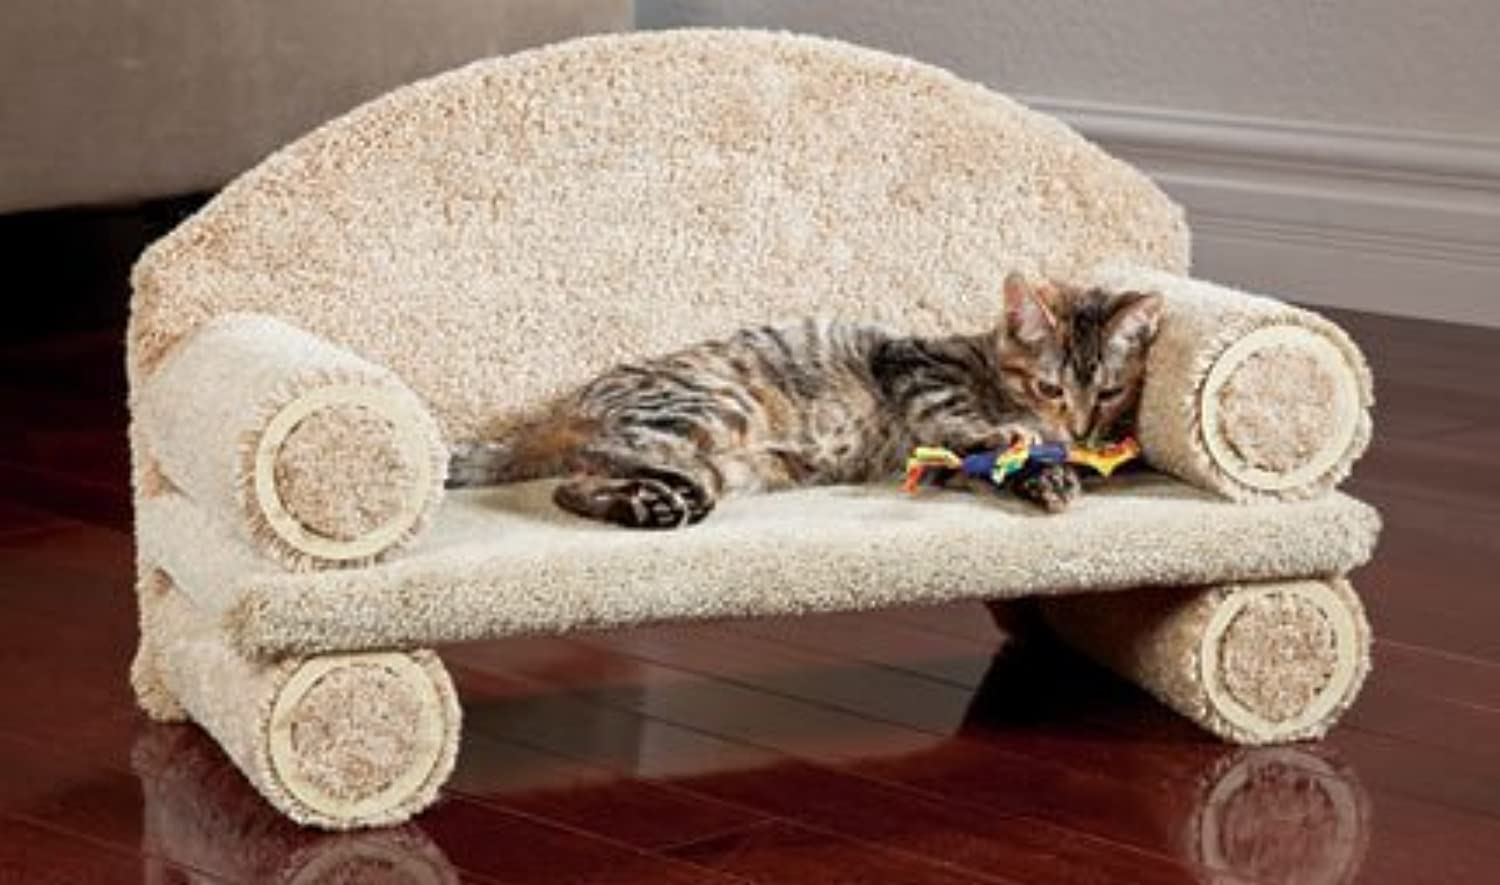 25 Couch, Cat KITTY CLASSY Assorted colors gbibe20735804-New